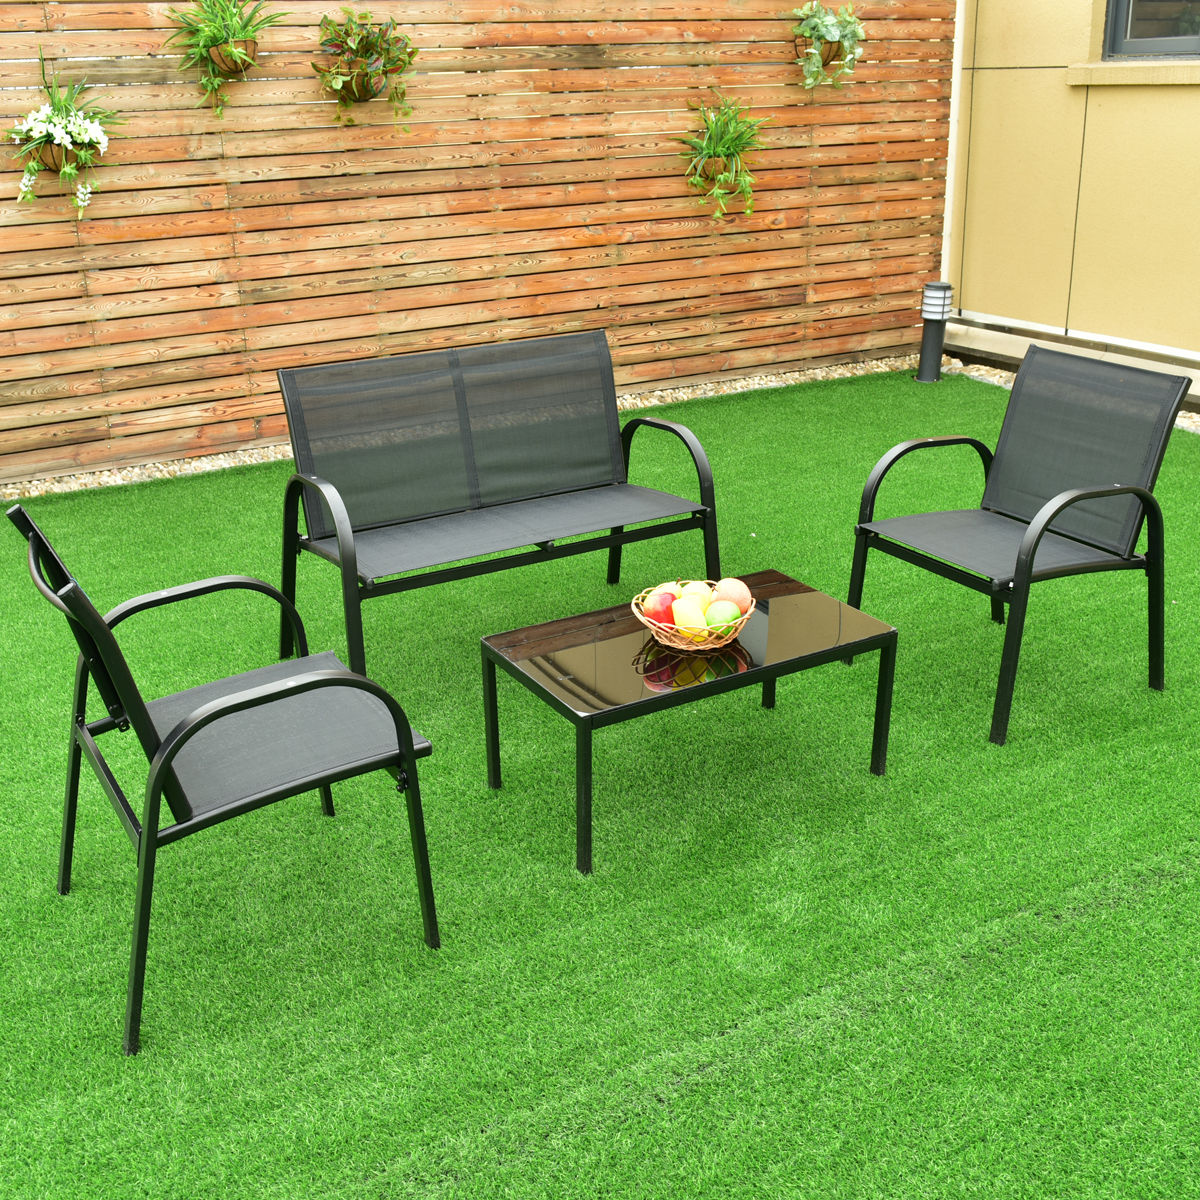 Merveilleux Costway 4 PCS Patio Furniture Set Sofa Coffee Table Steel Frame Garden Deck  Black